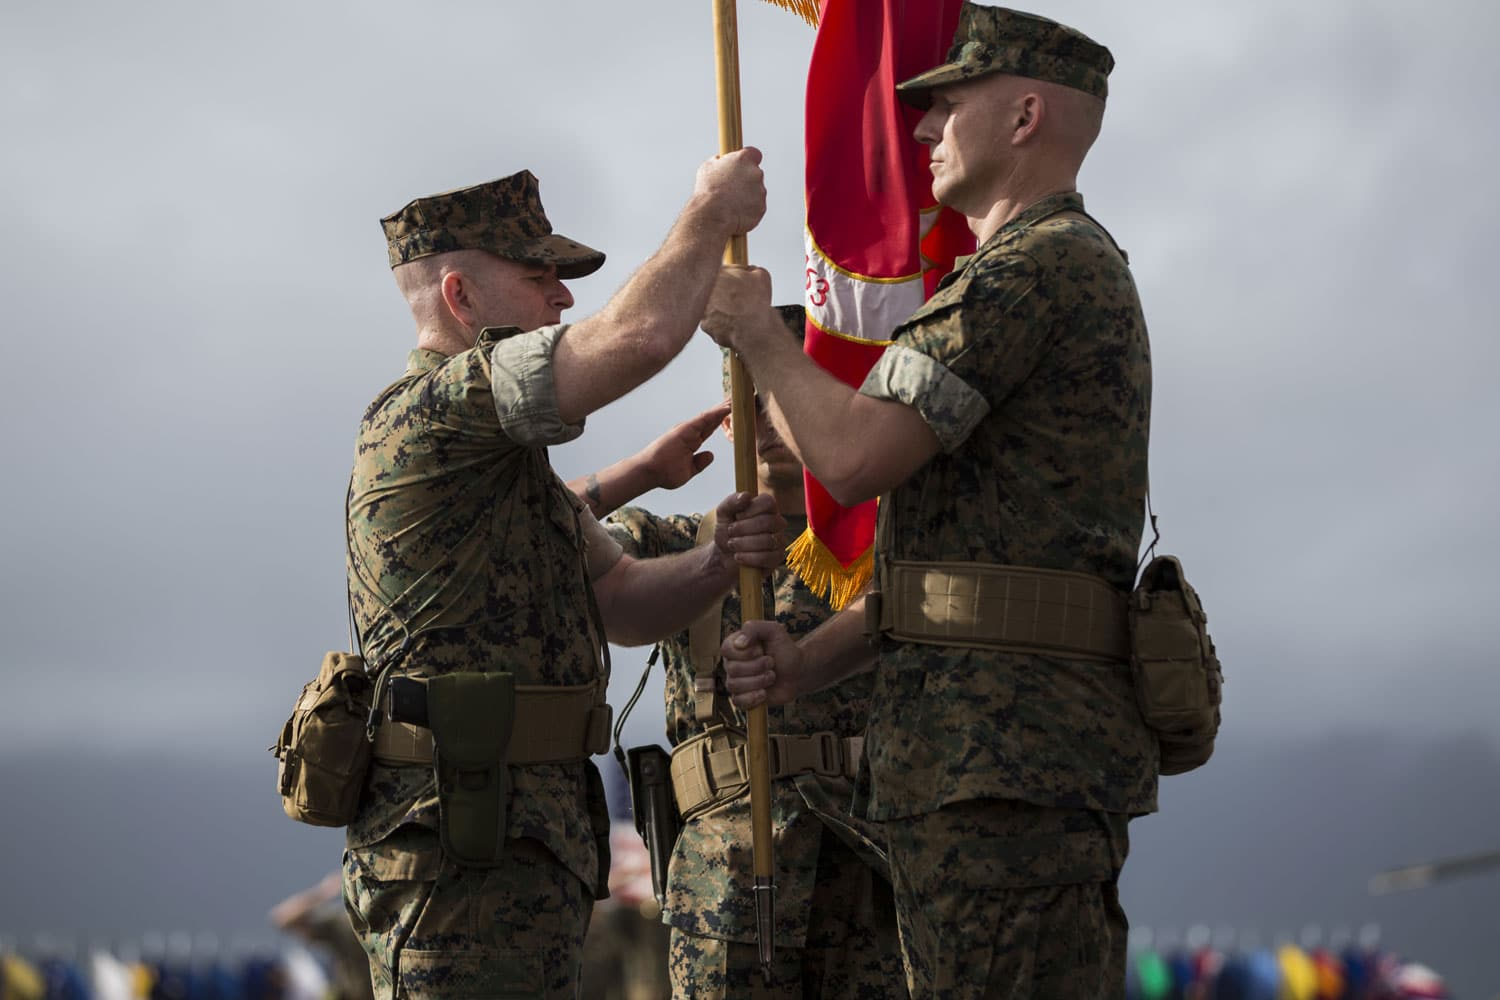 The passing of the United States Marines unit color symbolizes the passing of responsibility from one commanding officer to the next.